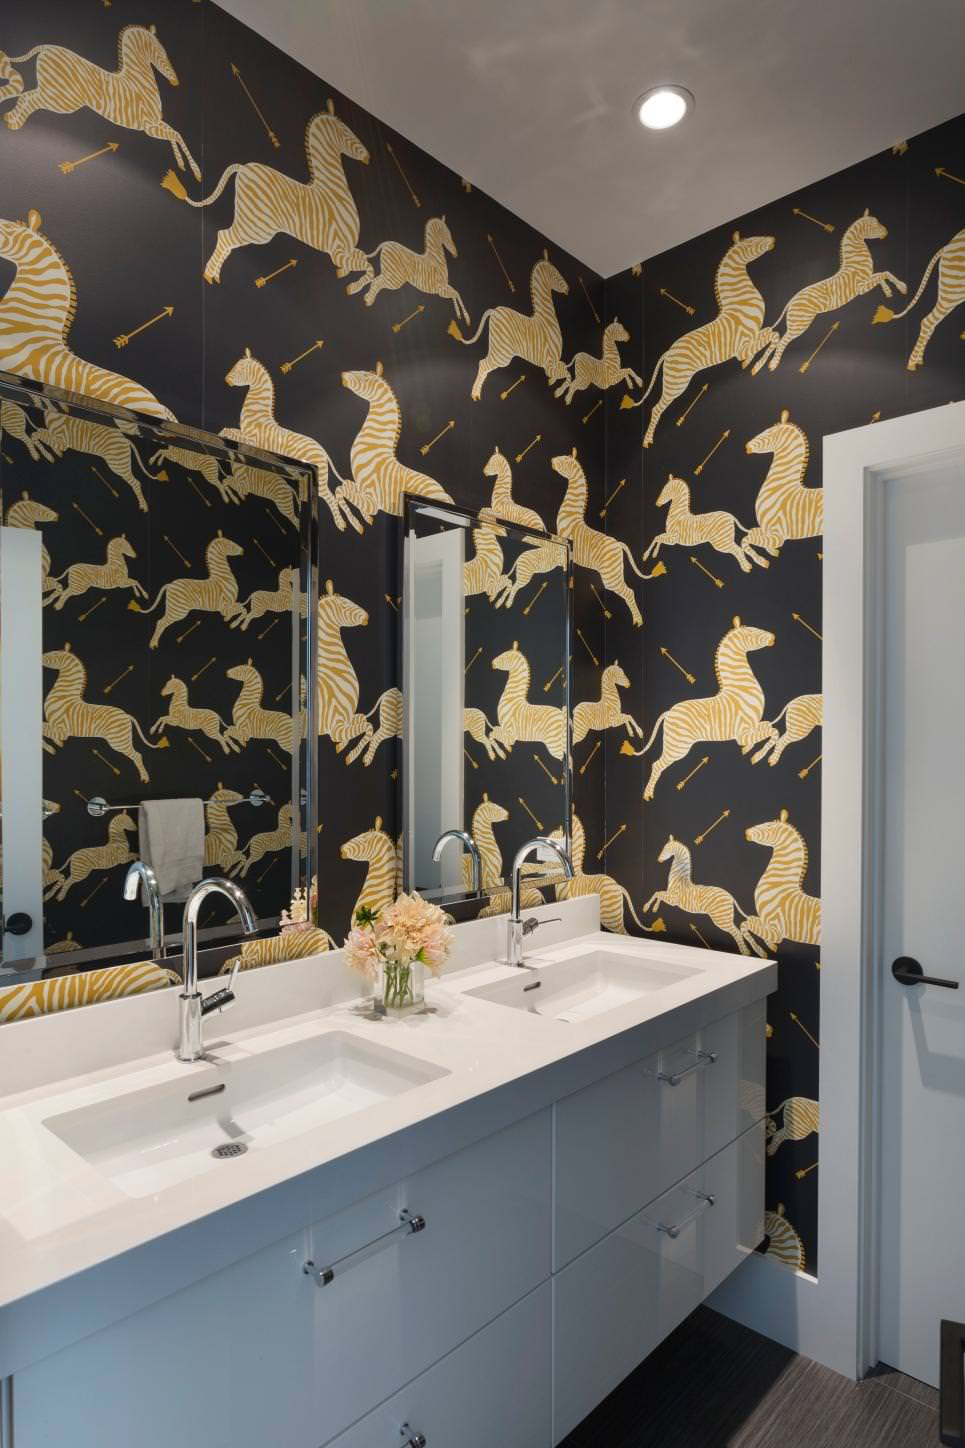 Bathroom Black and Gold Wall Designs